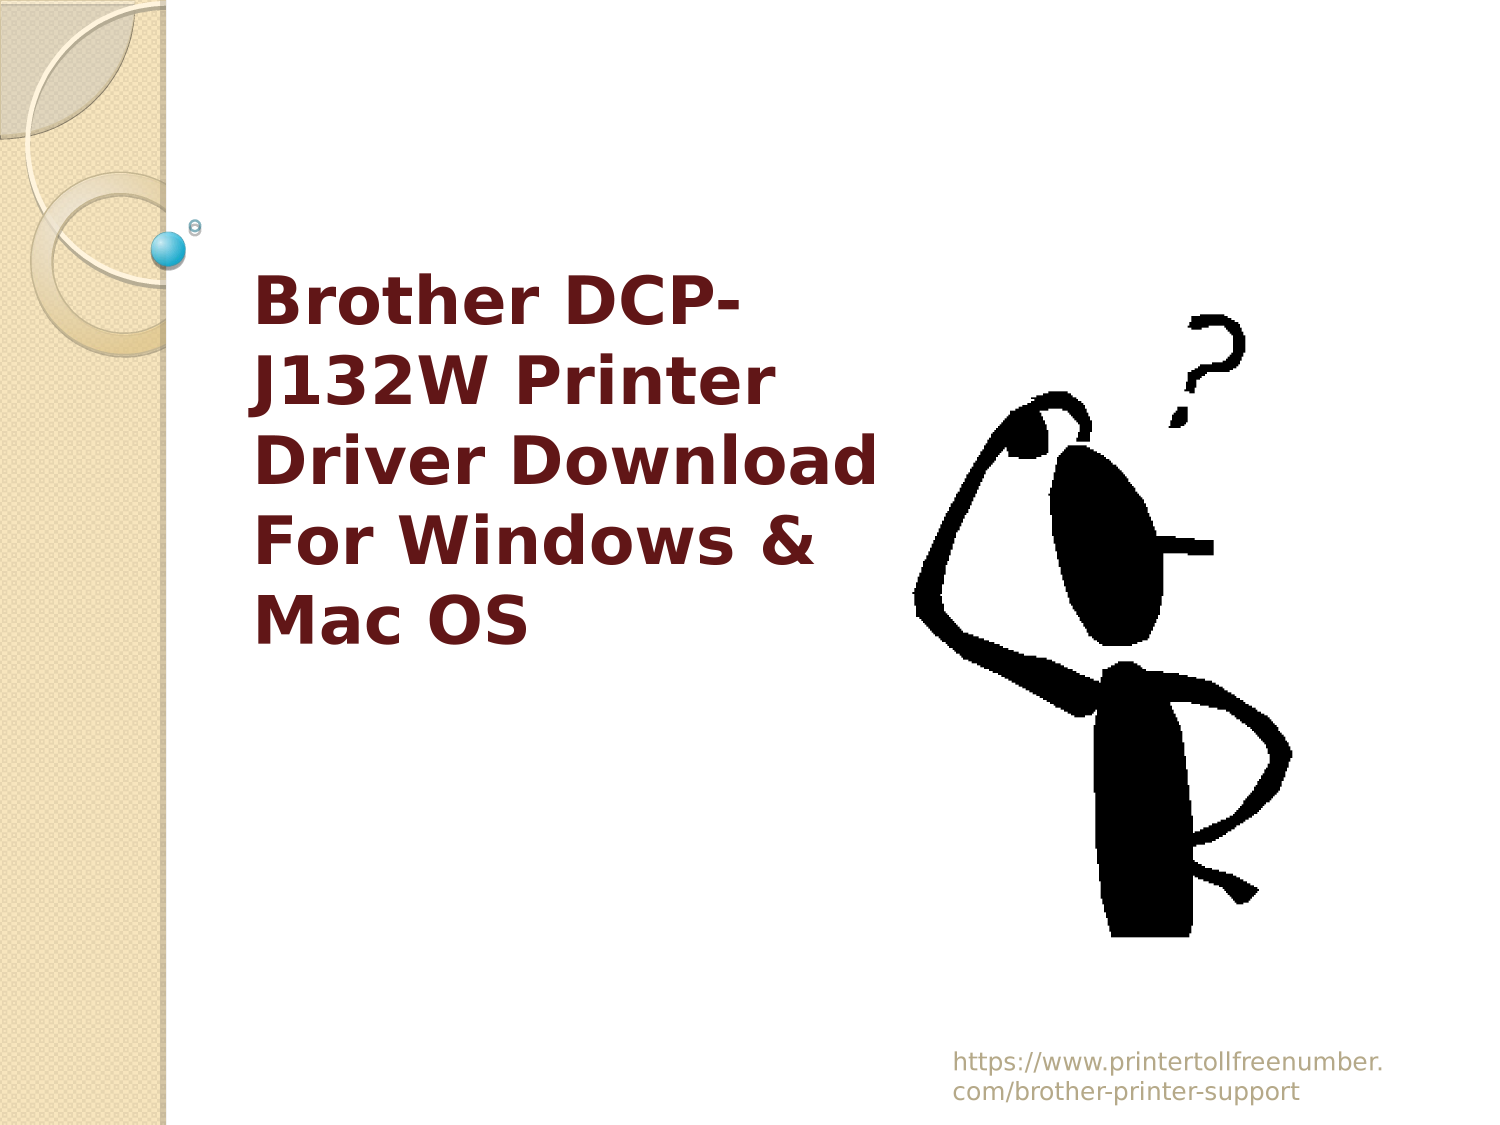 Brother DCP-J132W Printer Driver Download For Windows & Mac OS